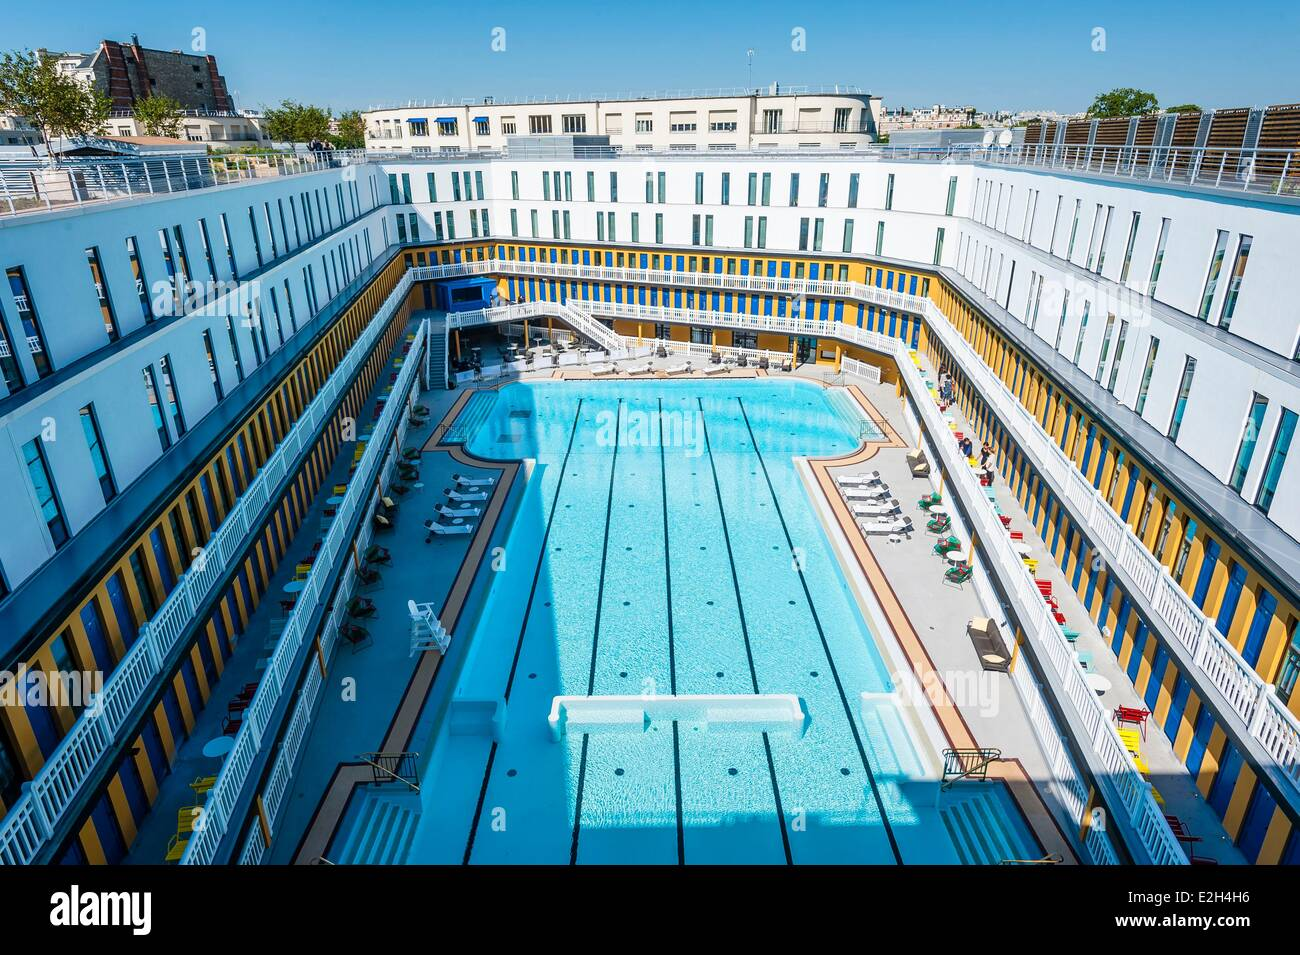 france paris hotel molitor swimming pool opening in may